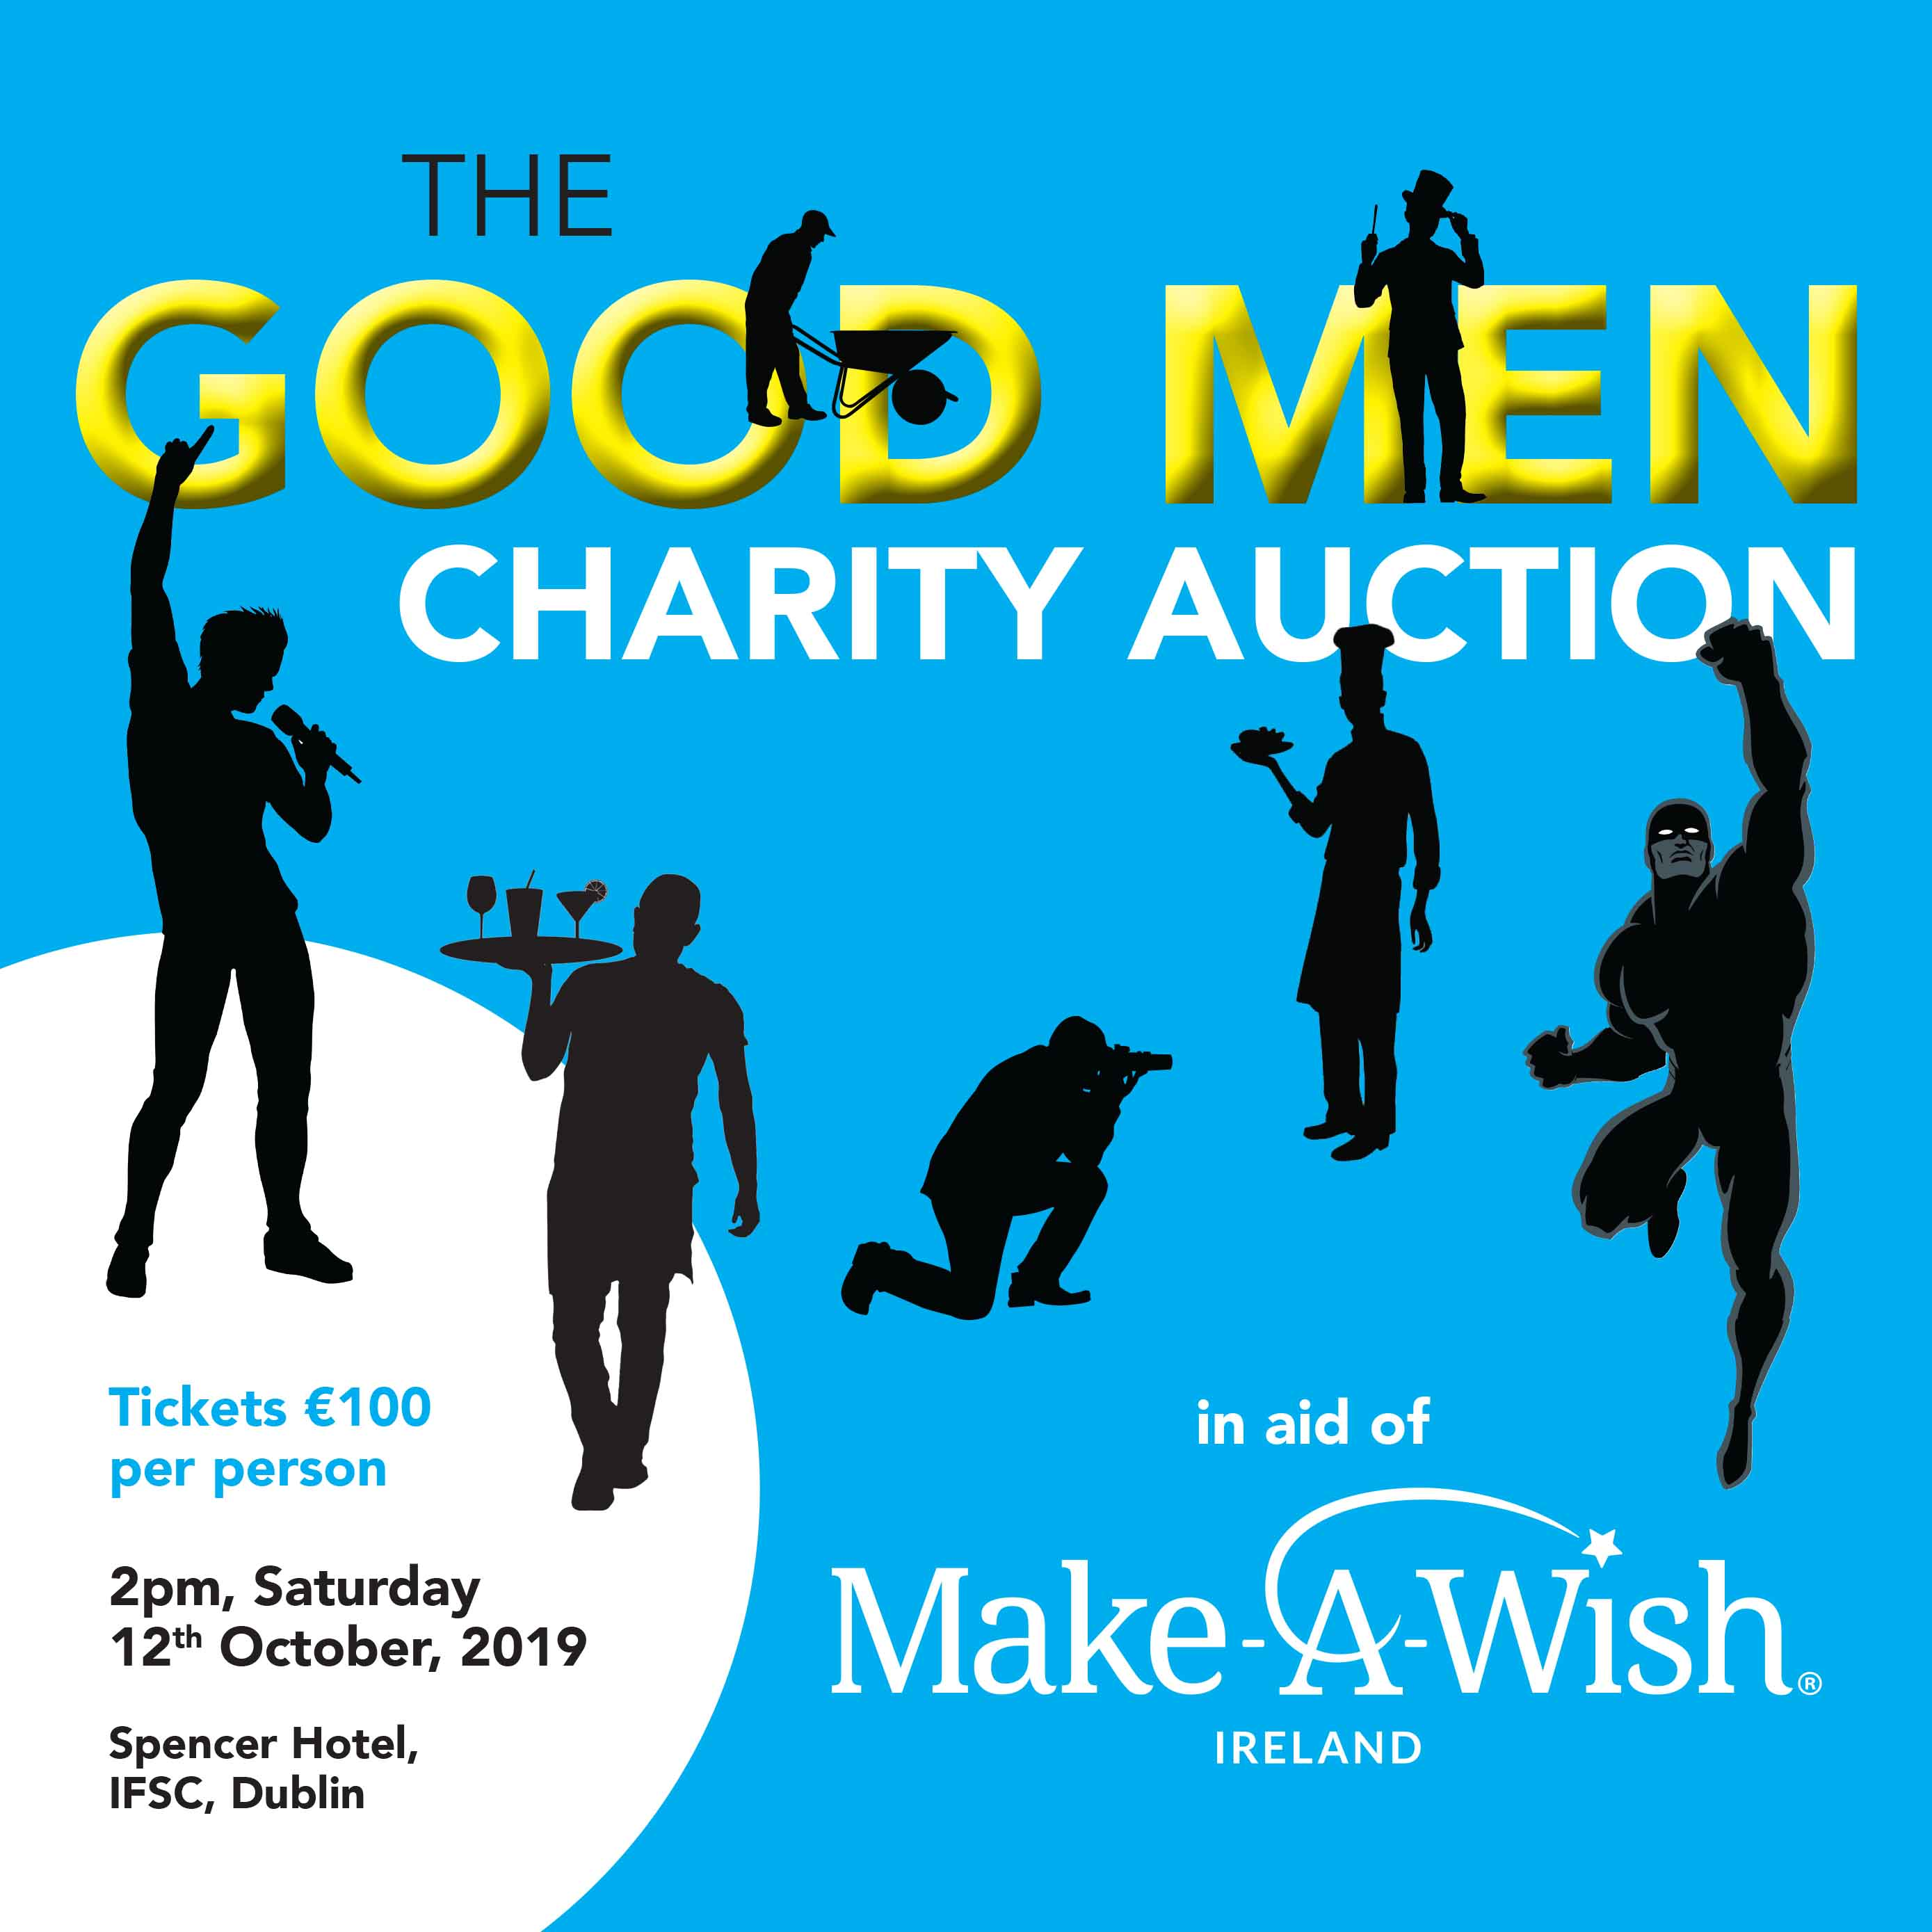 The Good Men - Charity Auction